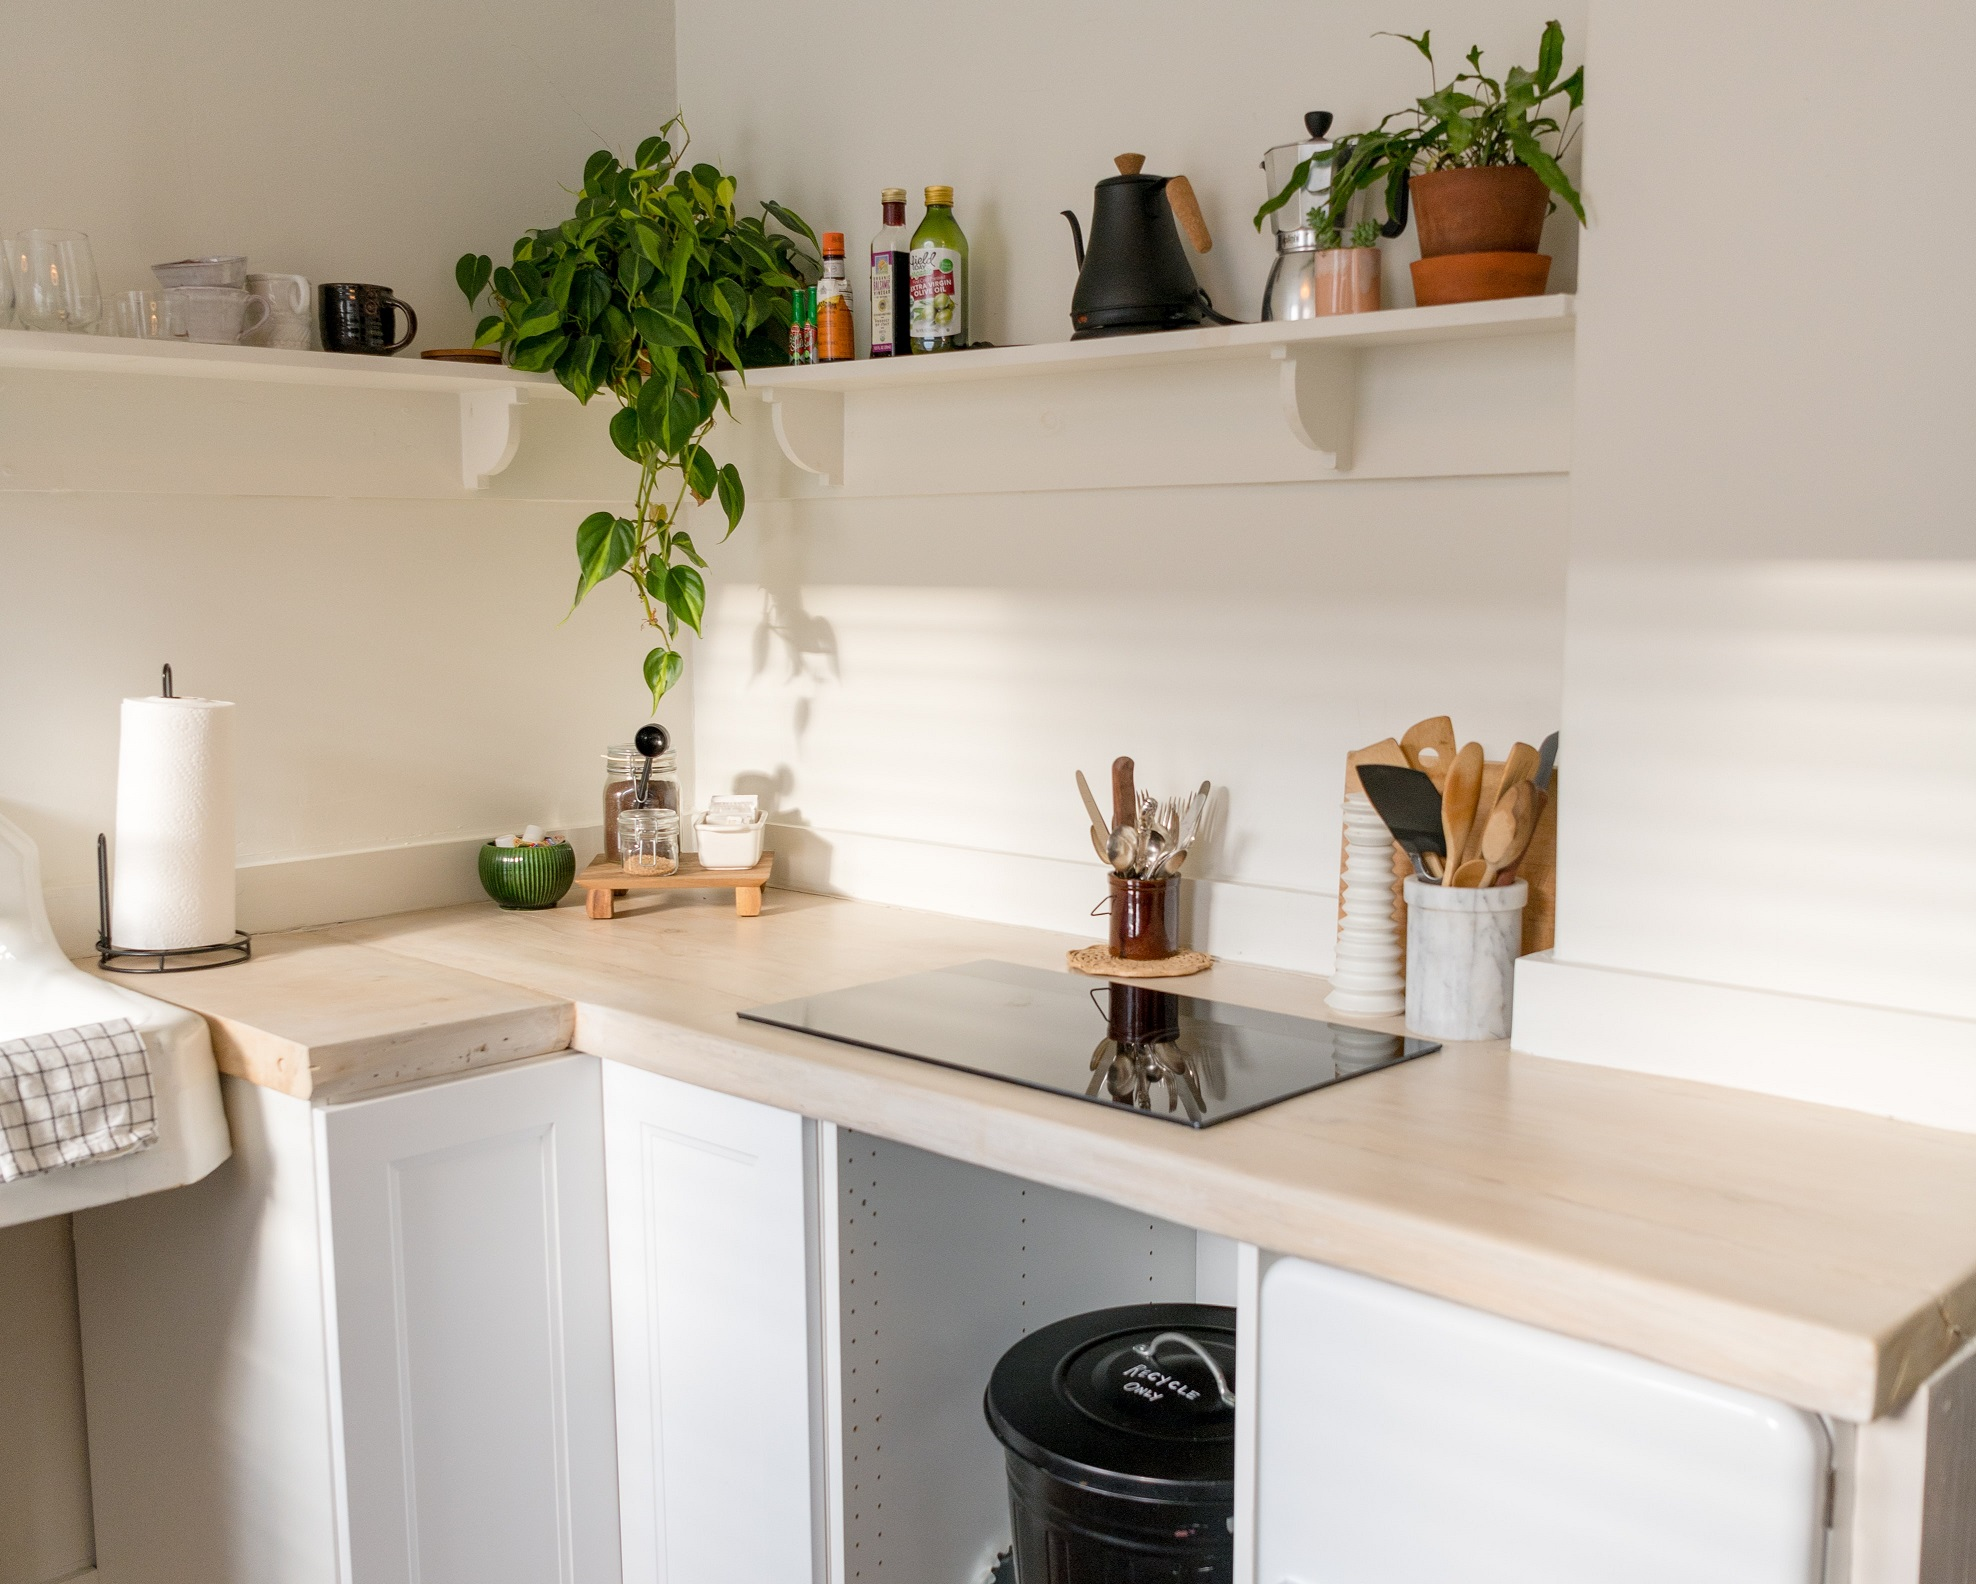 kitchen corner with plants and pots